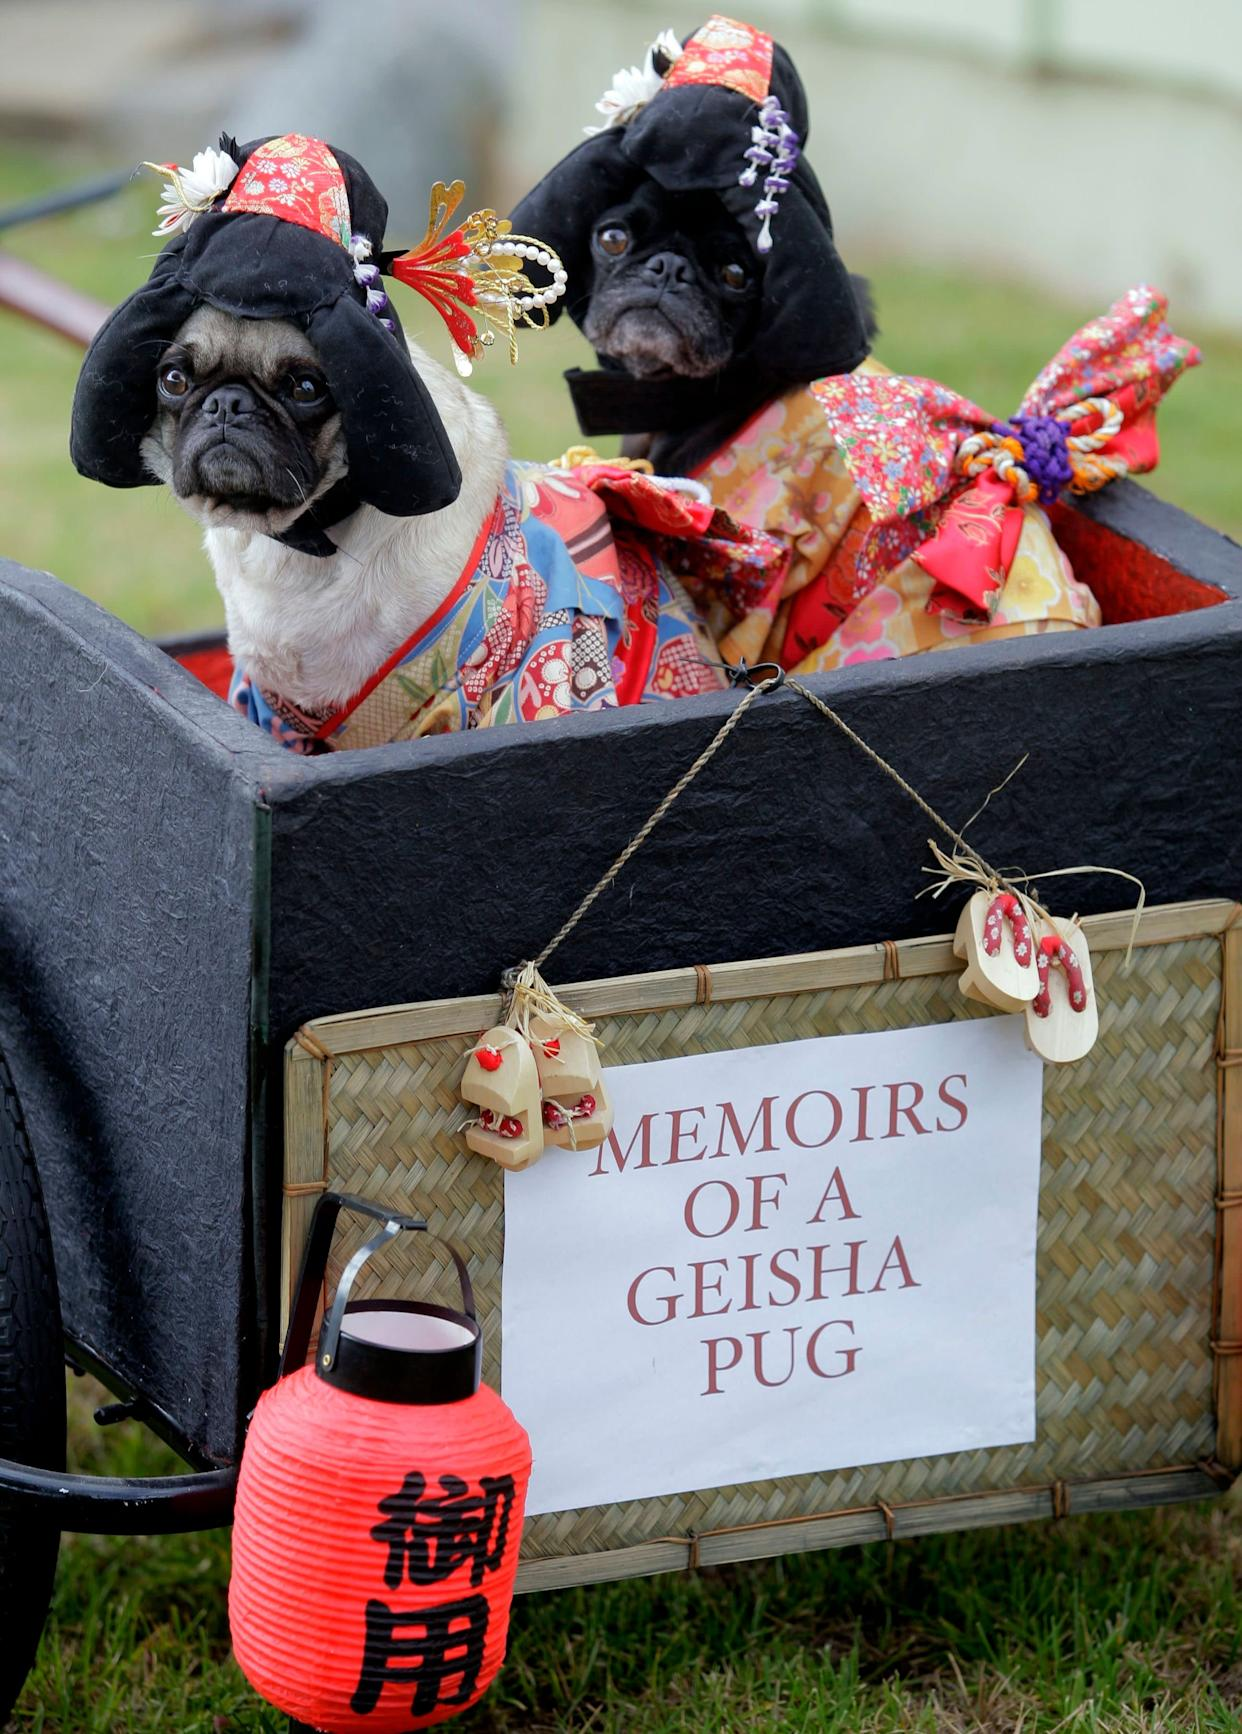 """This photo taken Oct. 4, 2009 shows pugs Mochi, left, and Olive posing for a photo dressed as Geisha girls at they're home in Huntington Beach Calif. The stepsisters have been geisha girls, surfer girls and sushi over the years. They may not understand the tradition, but """"pugs understand positive energy,"""" explained dog owner, partner and costume designer Lisa Woodruff. (AP Photo/Richard Vogel)"""